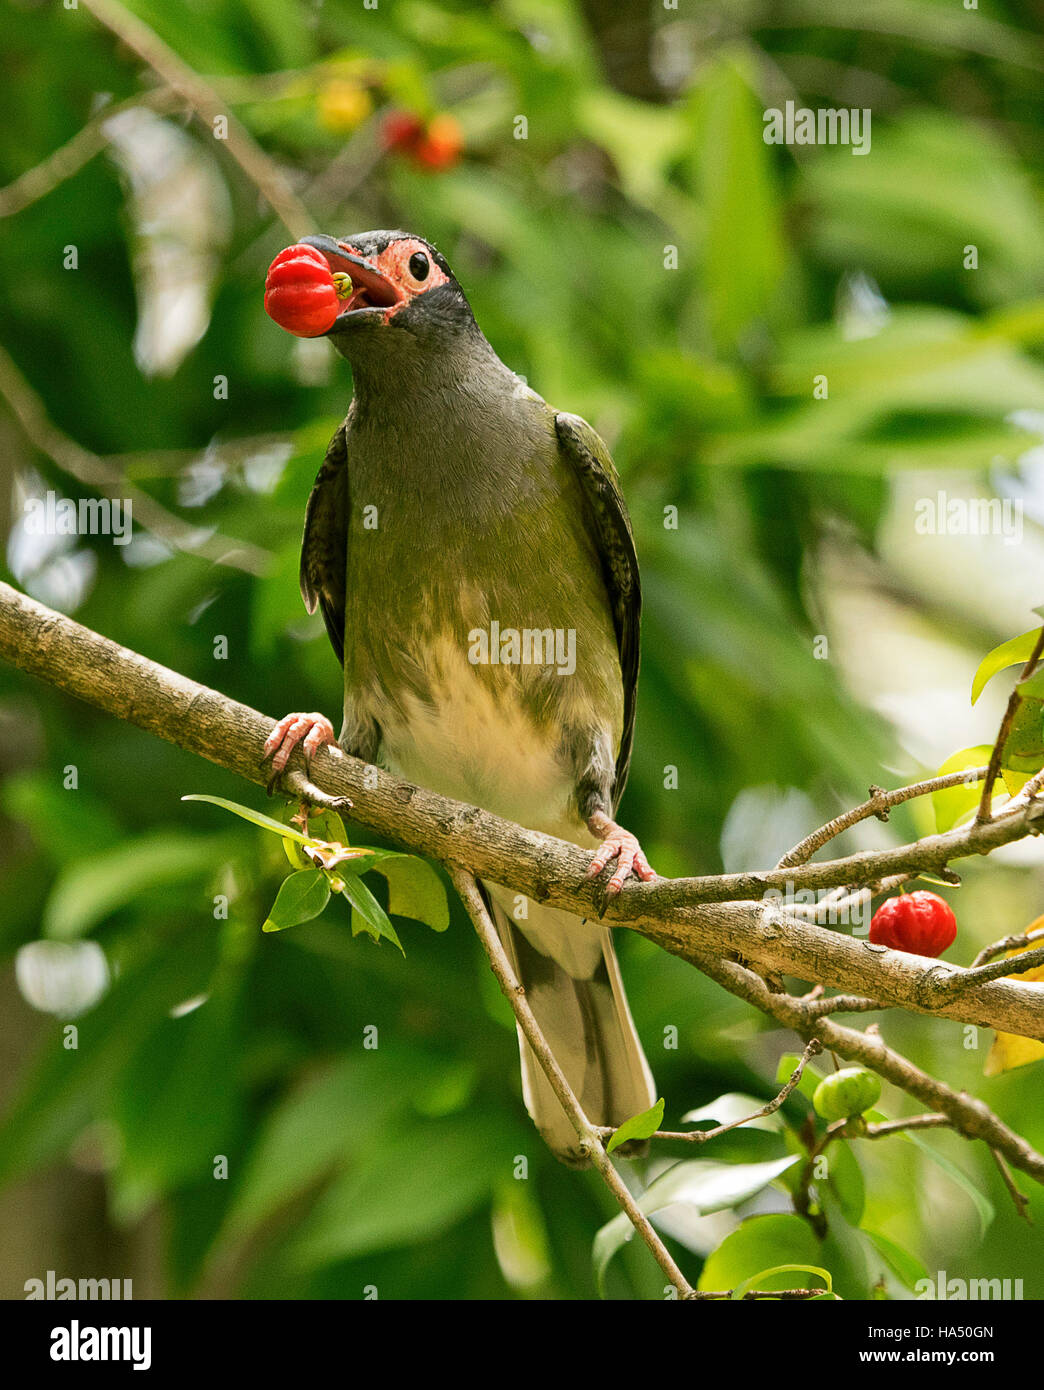 Male Australian green figbird, Sphecotheres viridis with vivid red fruit in bill against background of green foliage Stock Photo